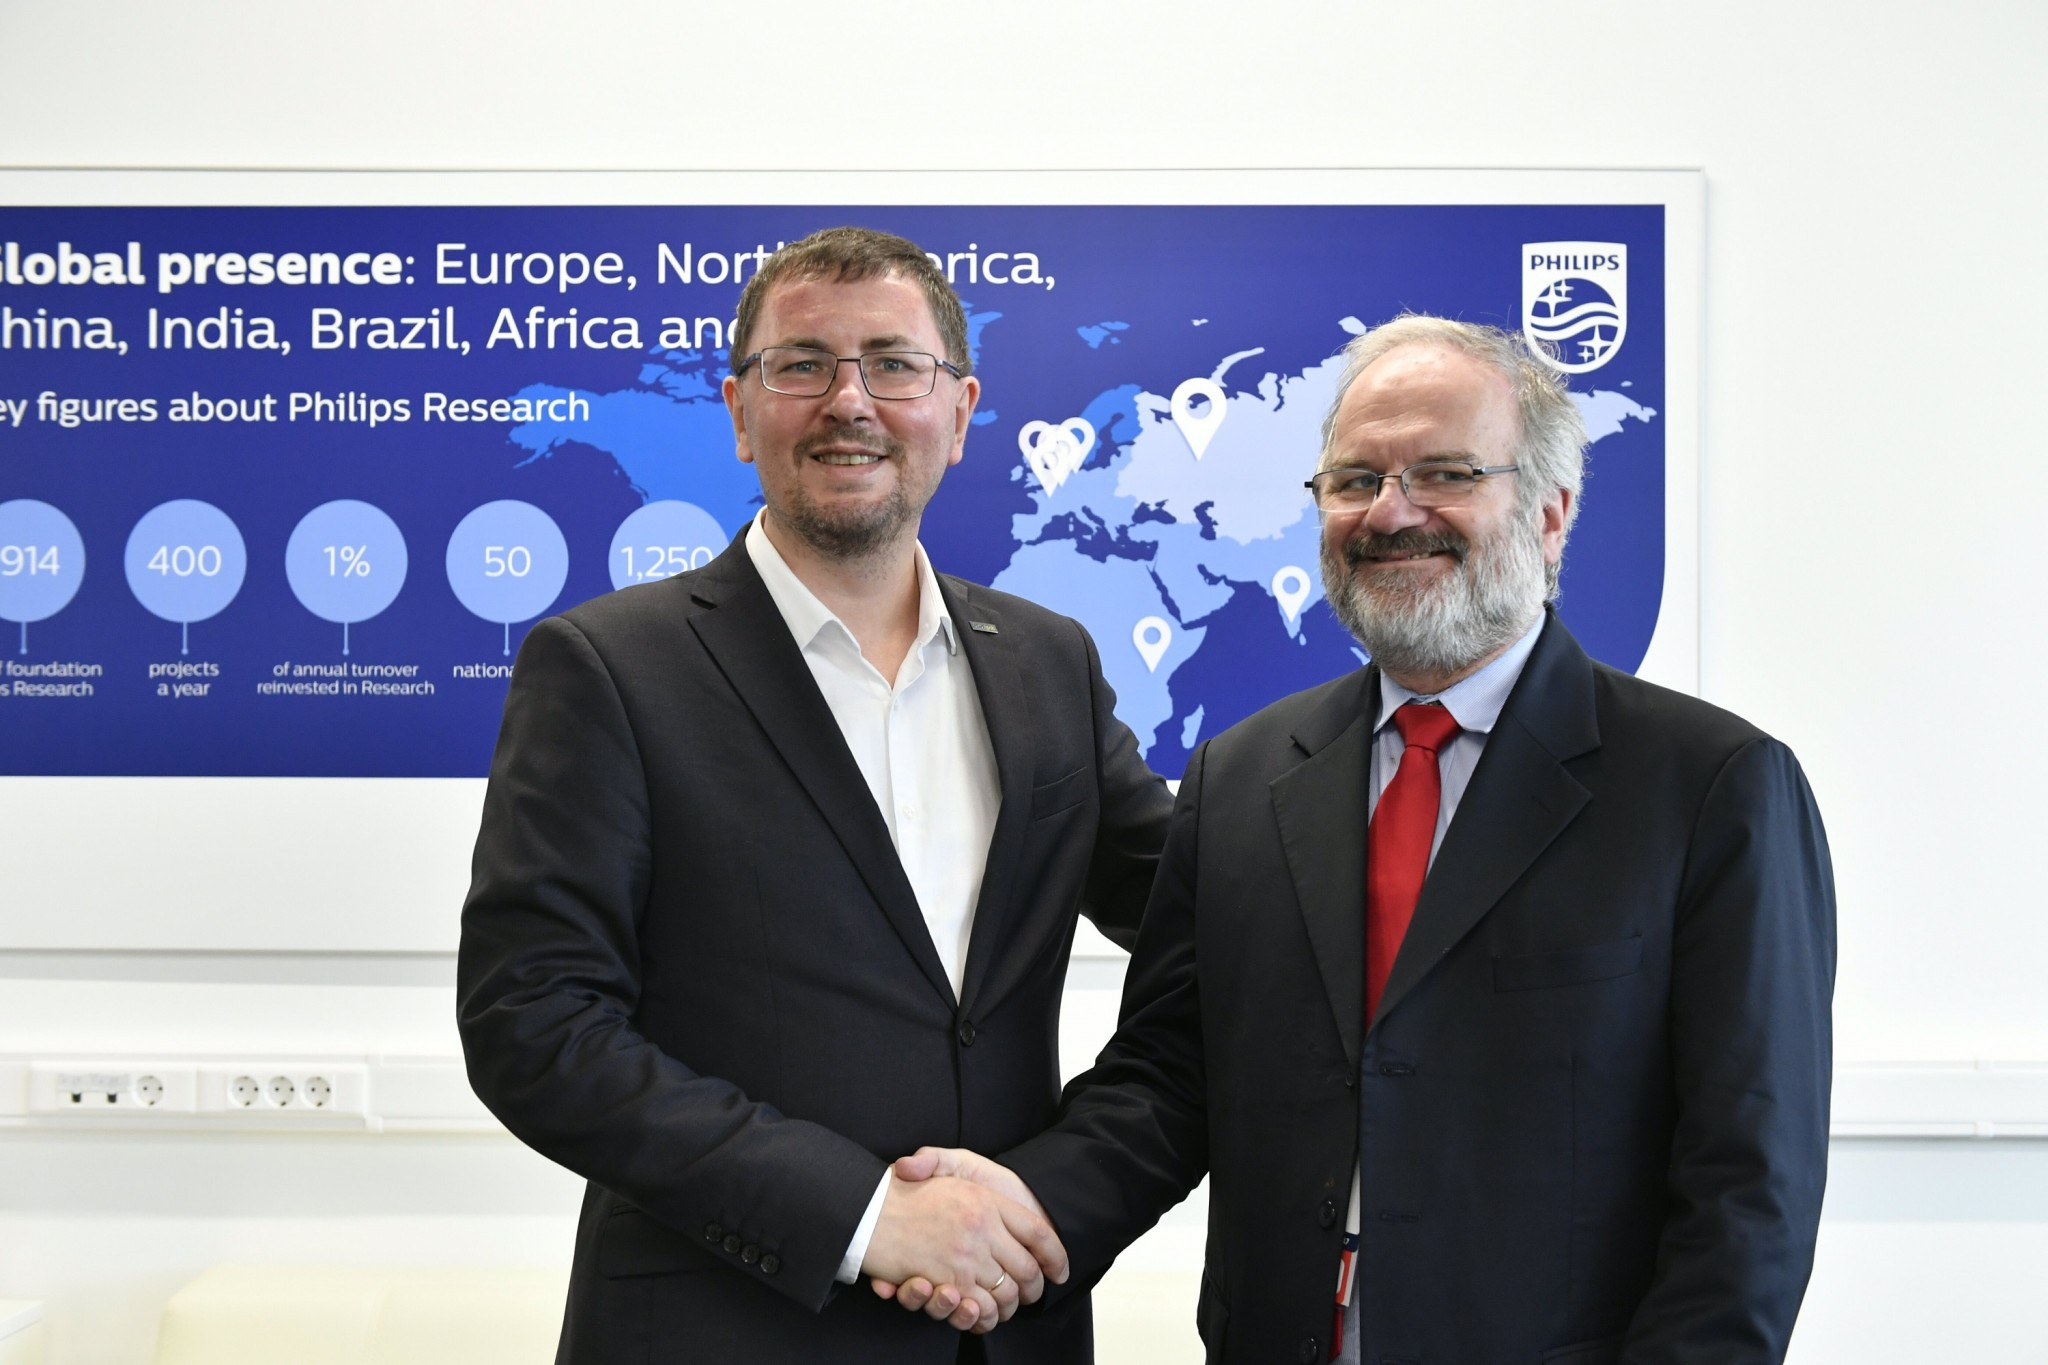 Skoltech Professor Maxim Fedorov with Dr. Hans-Aloys Wischmann,  Innovation Program Manager for Philips Research, who is responsible for the Philips-RUS lab, pictured during the event where they announced the Big Health partnership. Photo: Skoltech.